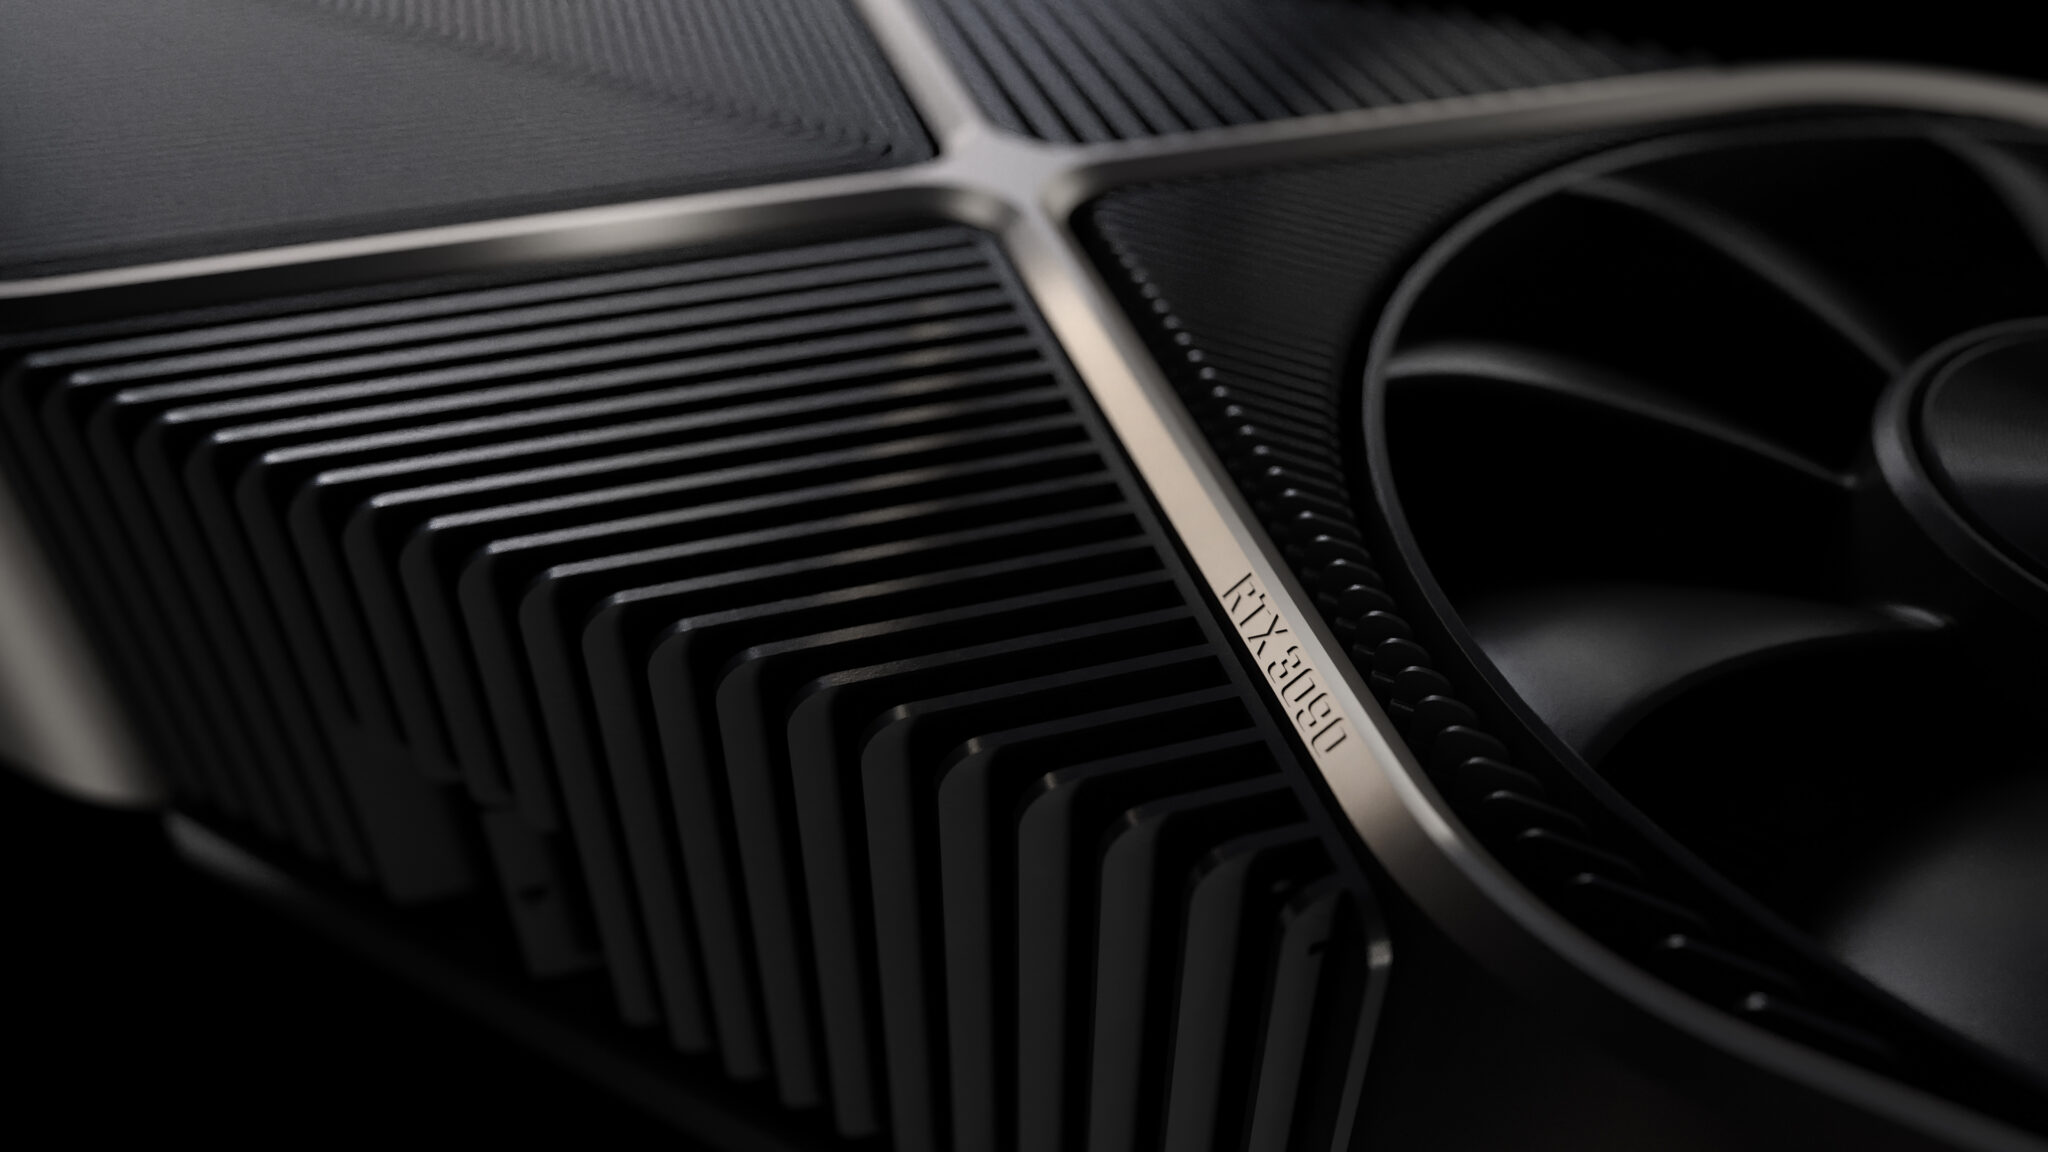 NVIDIA GeForce RTX 3080 Ti Rumored To Get 12 GB GDDR6X Memory Rated at 19 Gbps, Will Feature Hash Rate Limiter To Counter Crypto Miners